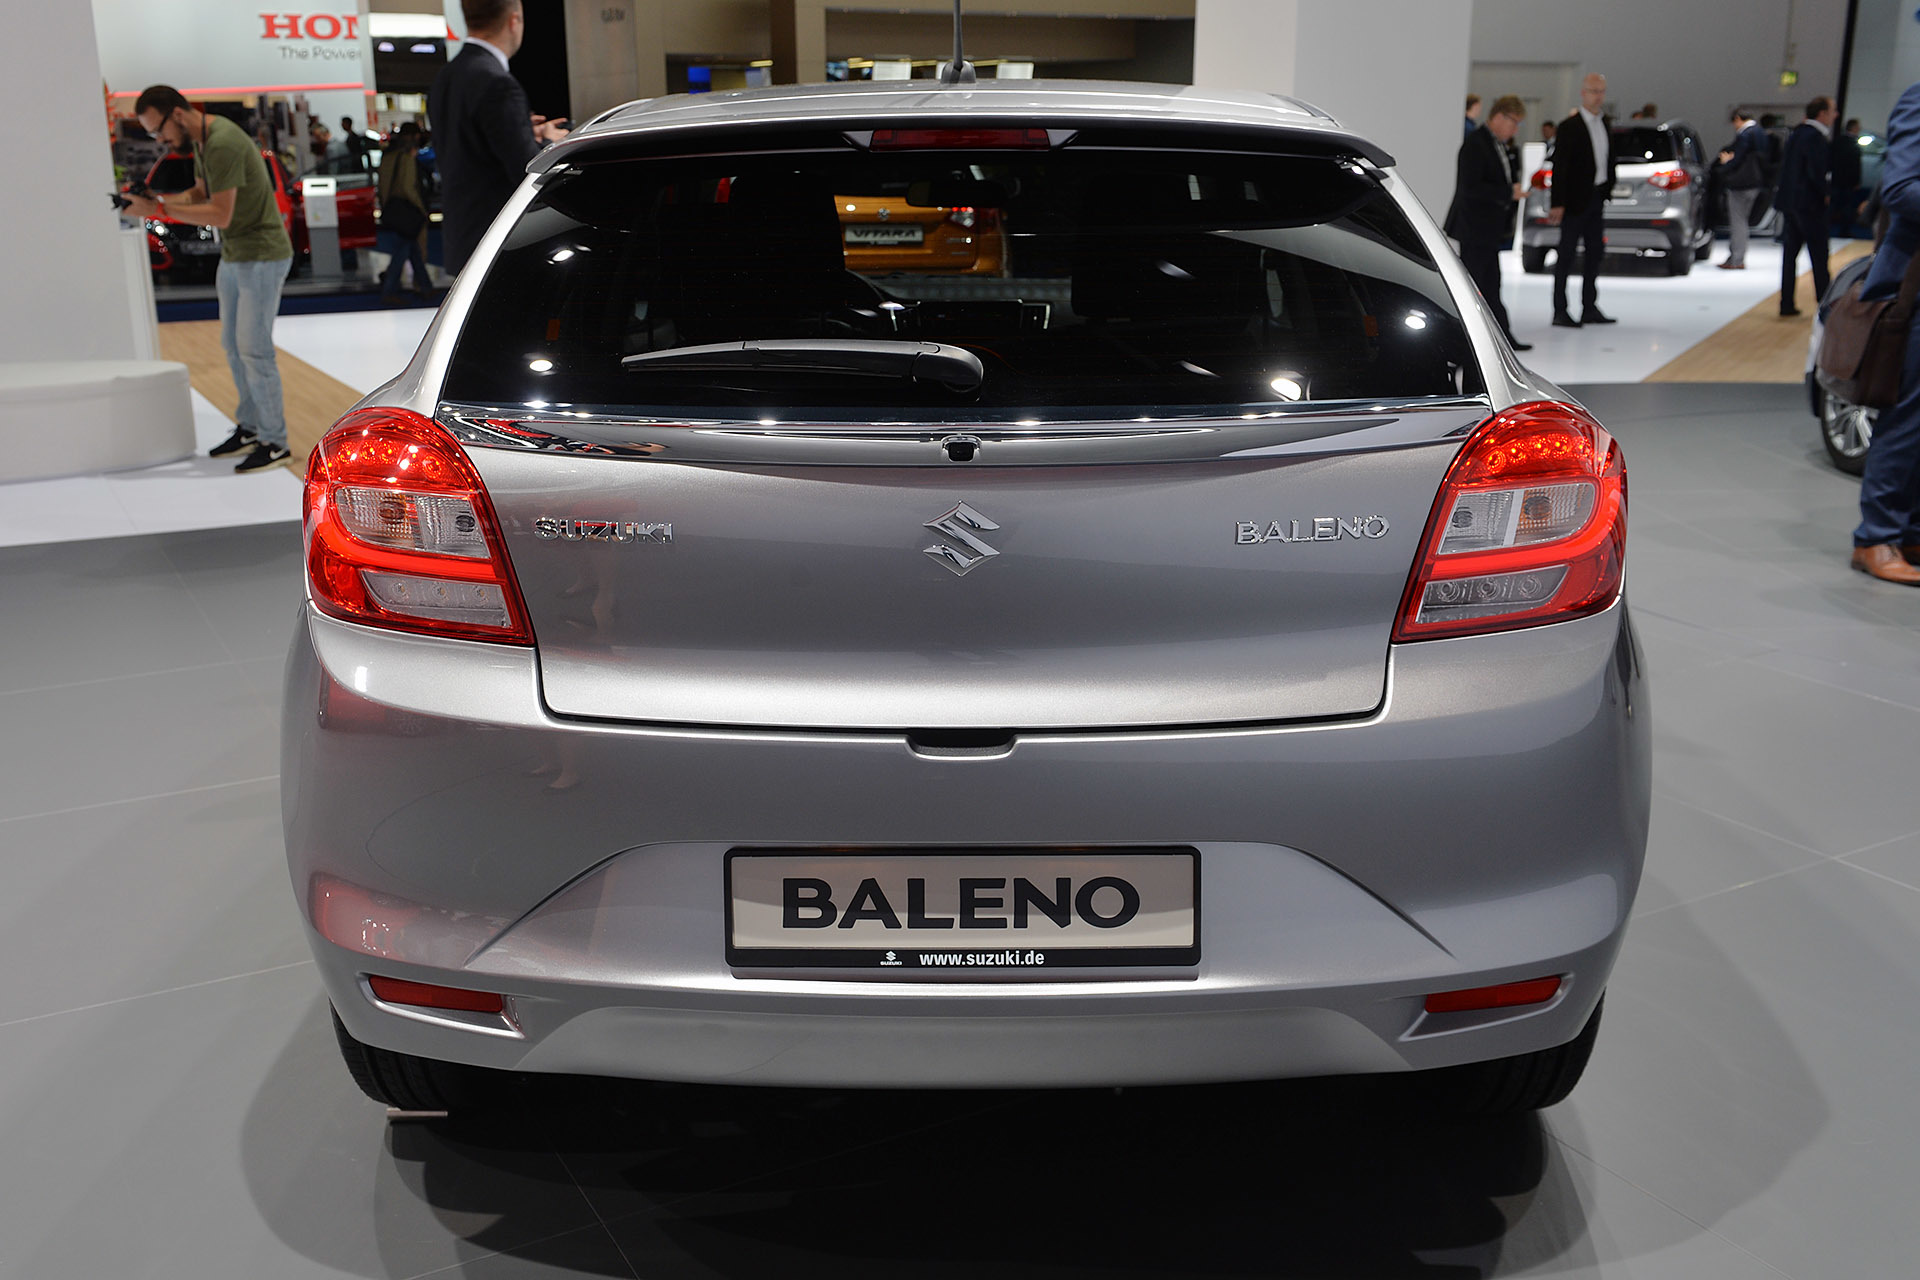 2016 Suzuki Baleno Frankfurt 2015 Photo Gallery